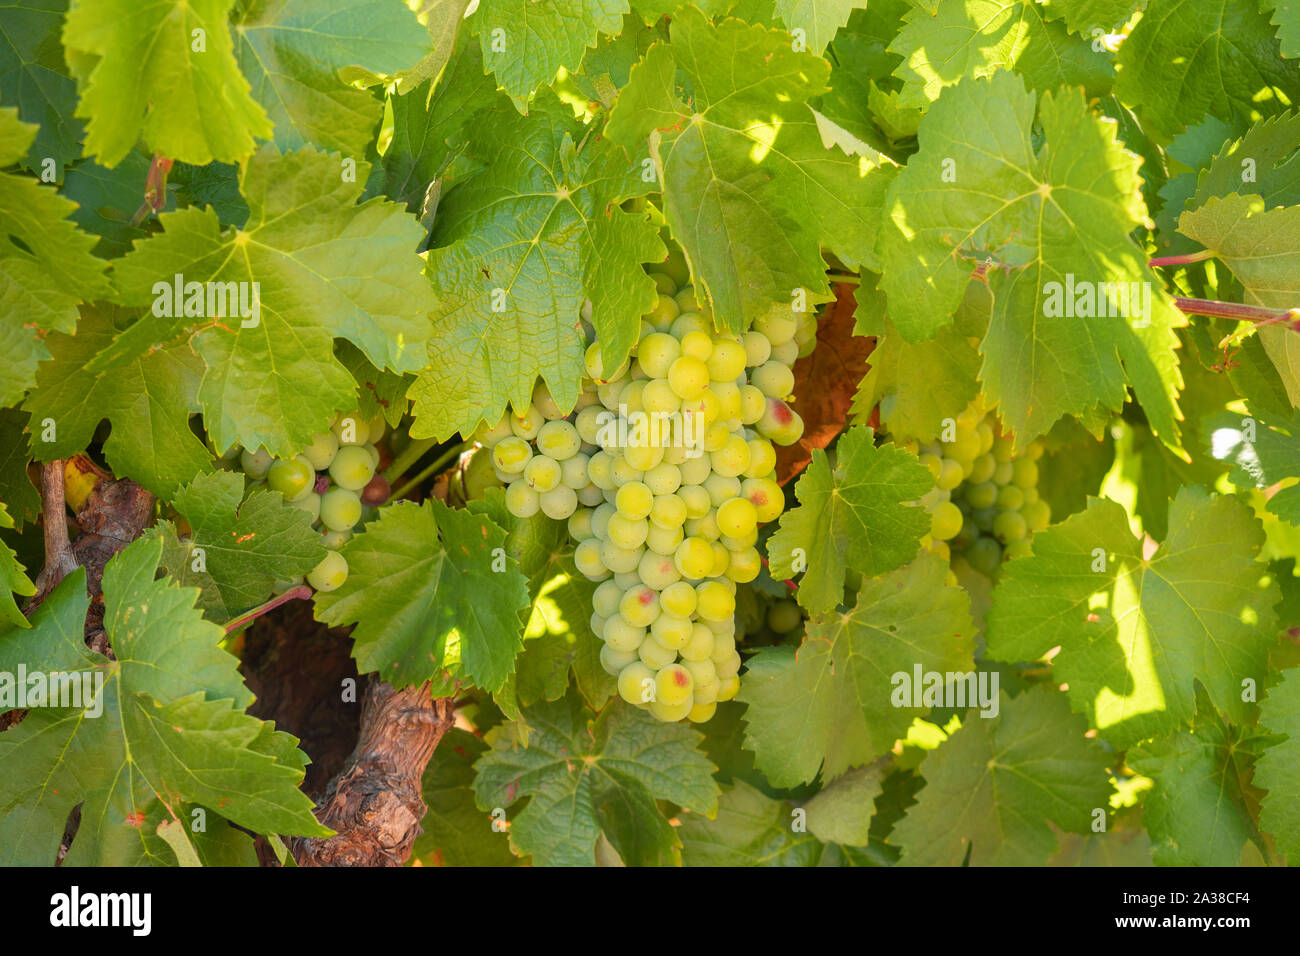 Detail of a white grape vineyard in Extremadura, Spain Stock Photo